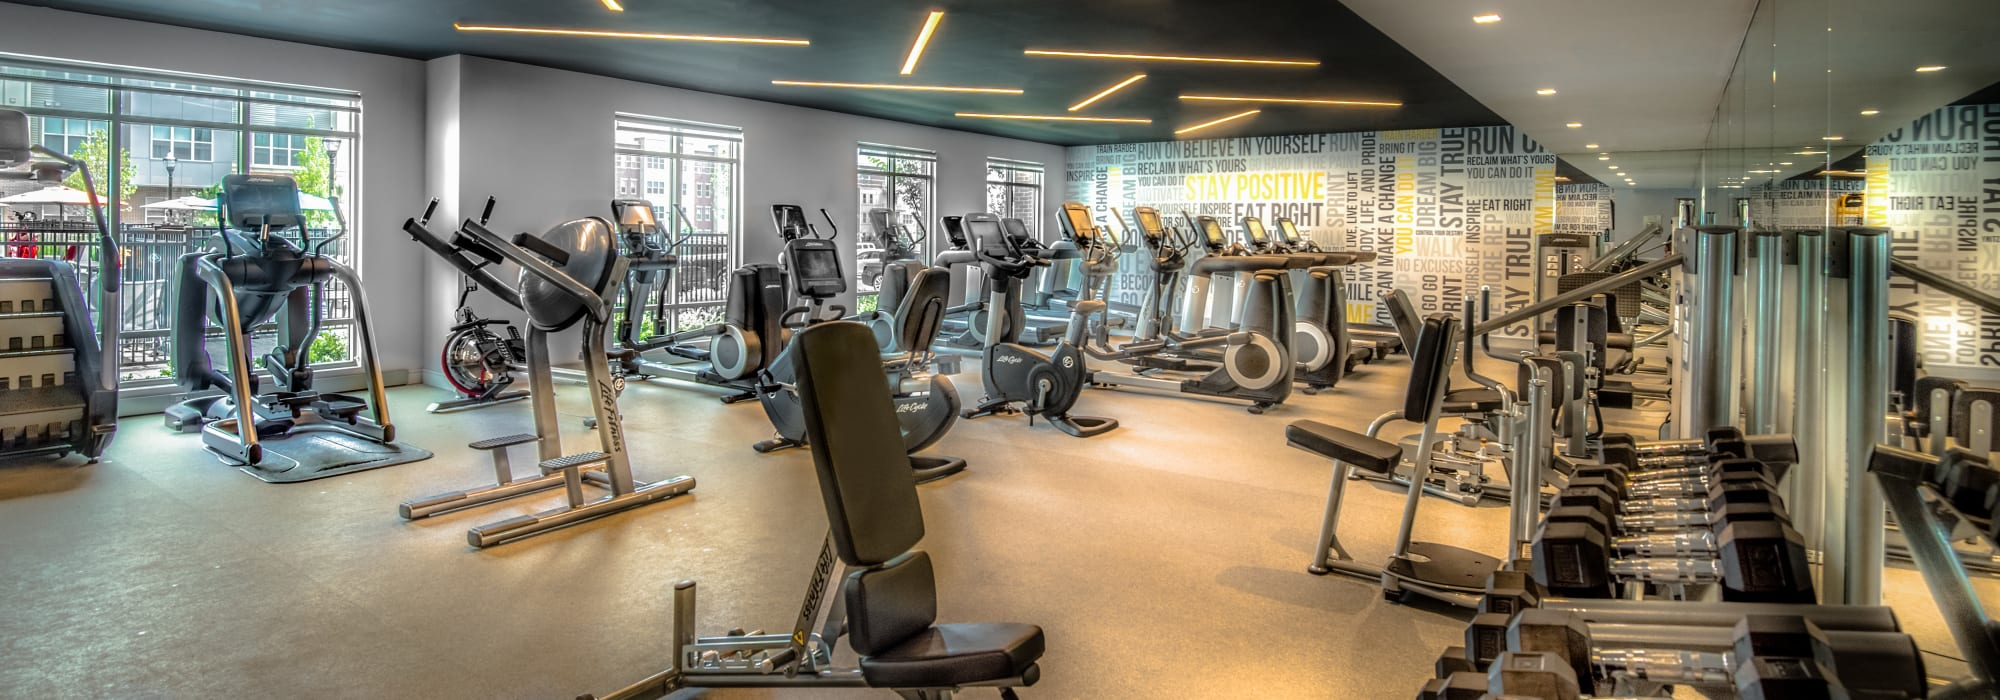 Fitness room at The Chase at Overlook Ridge in Malden, Massachusetts